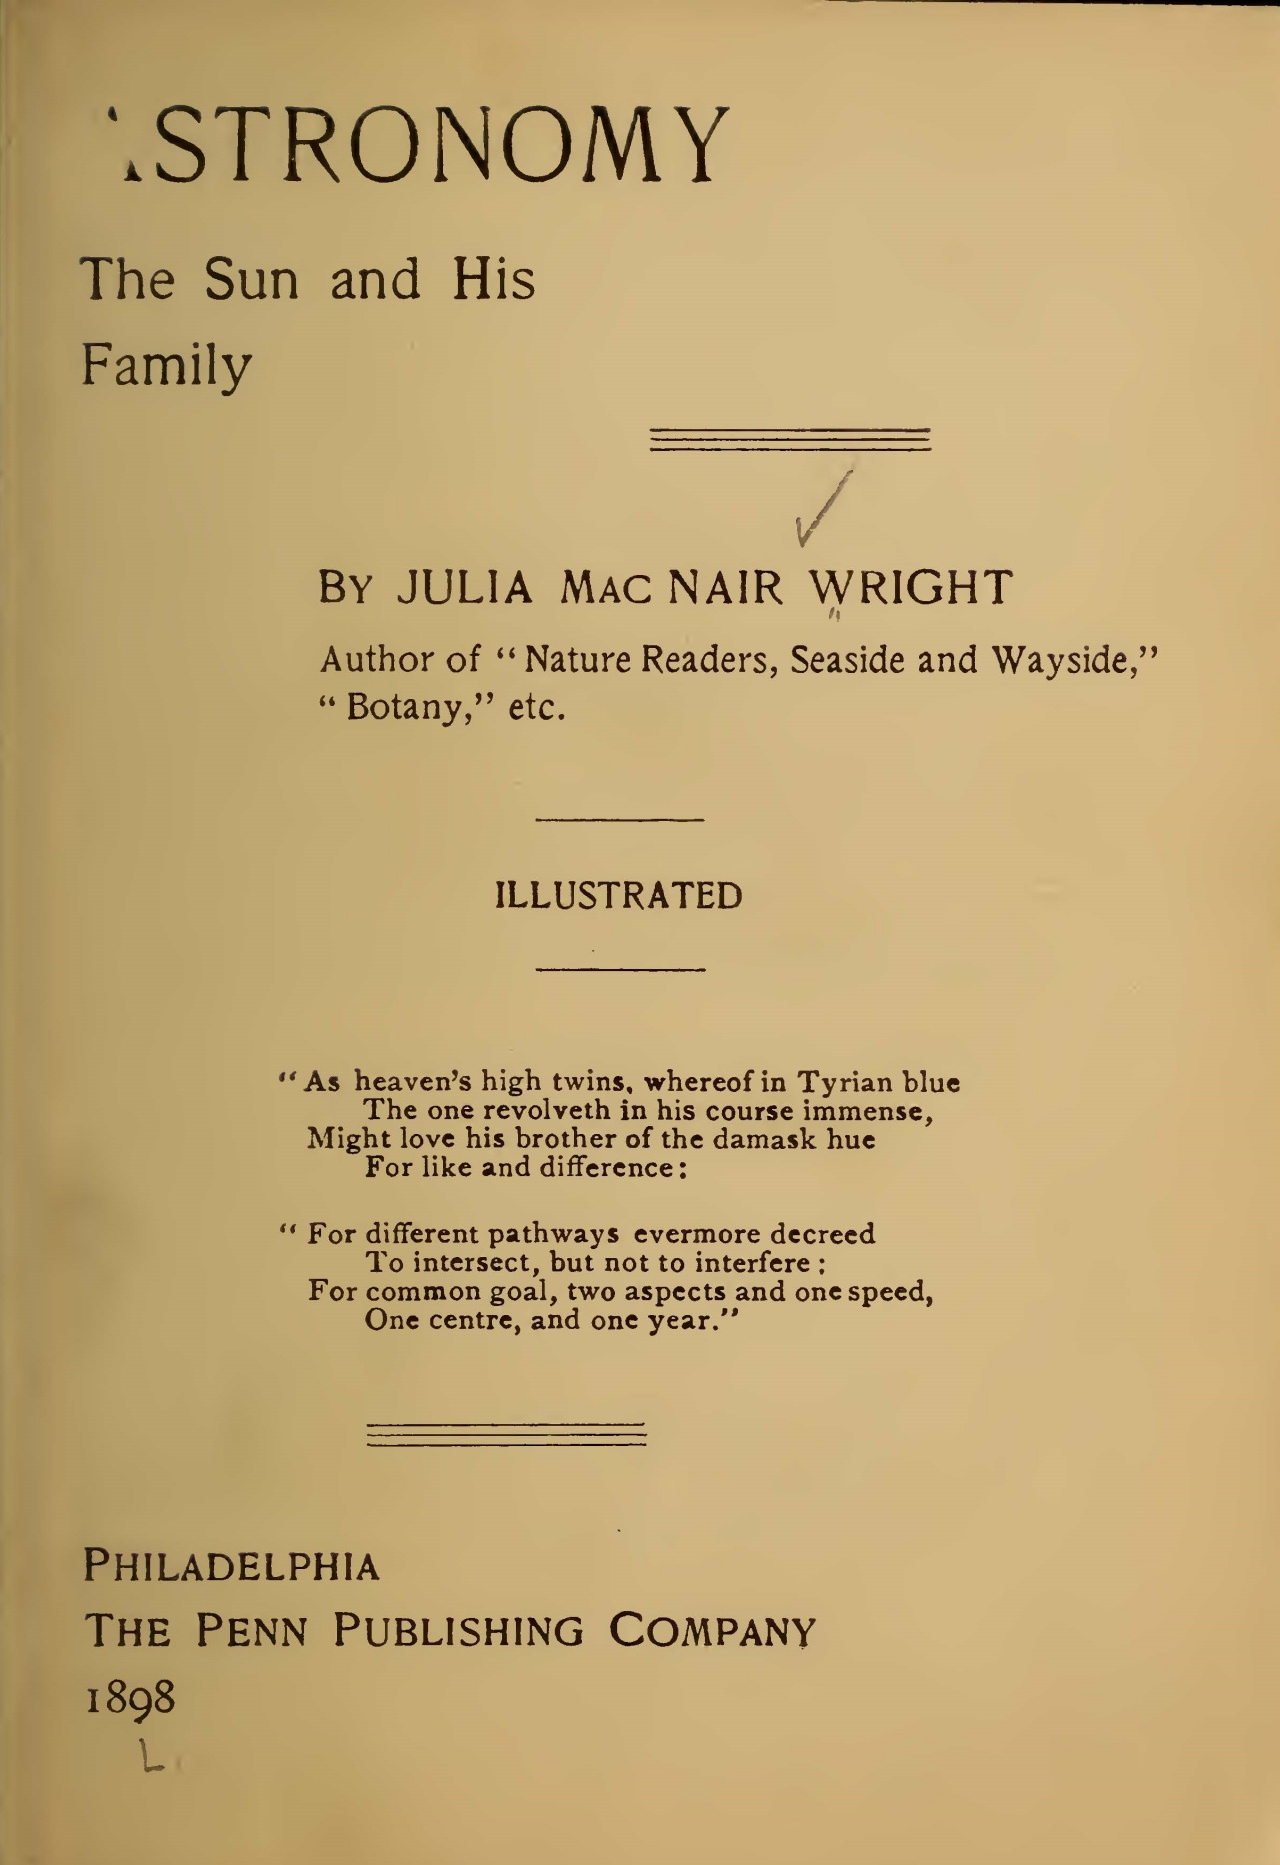 Wright, Julia McNair, Astronomy Title Page.jpg